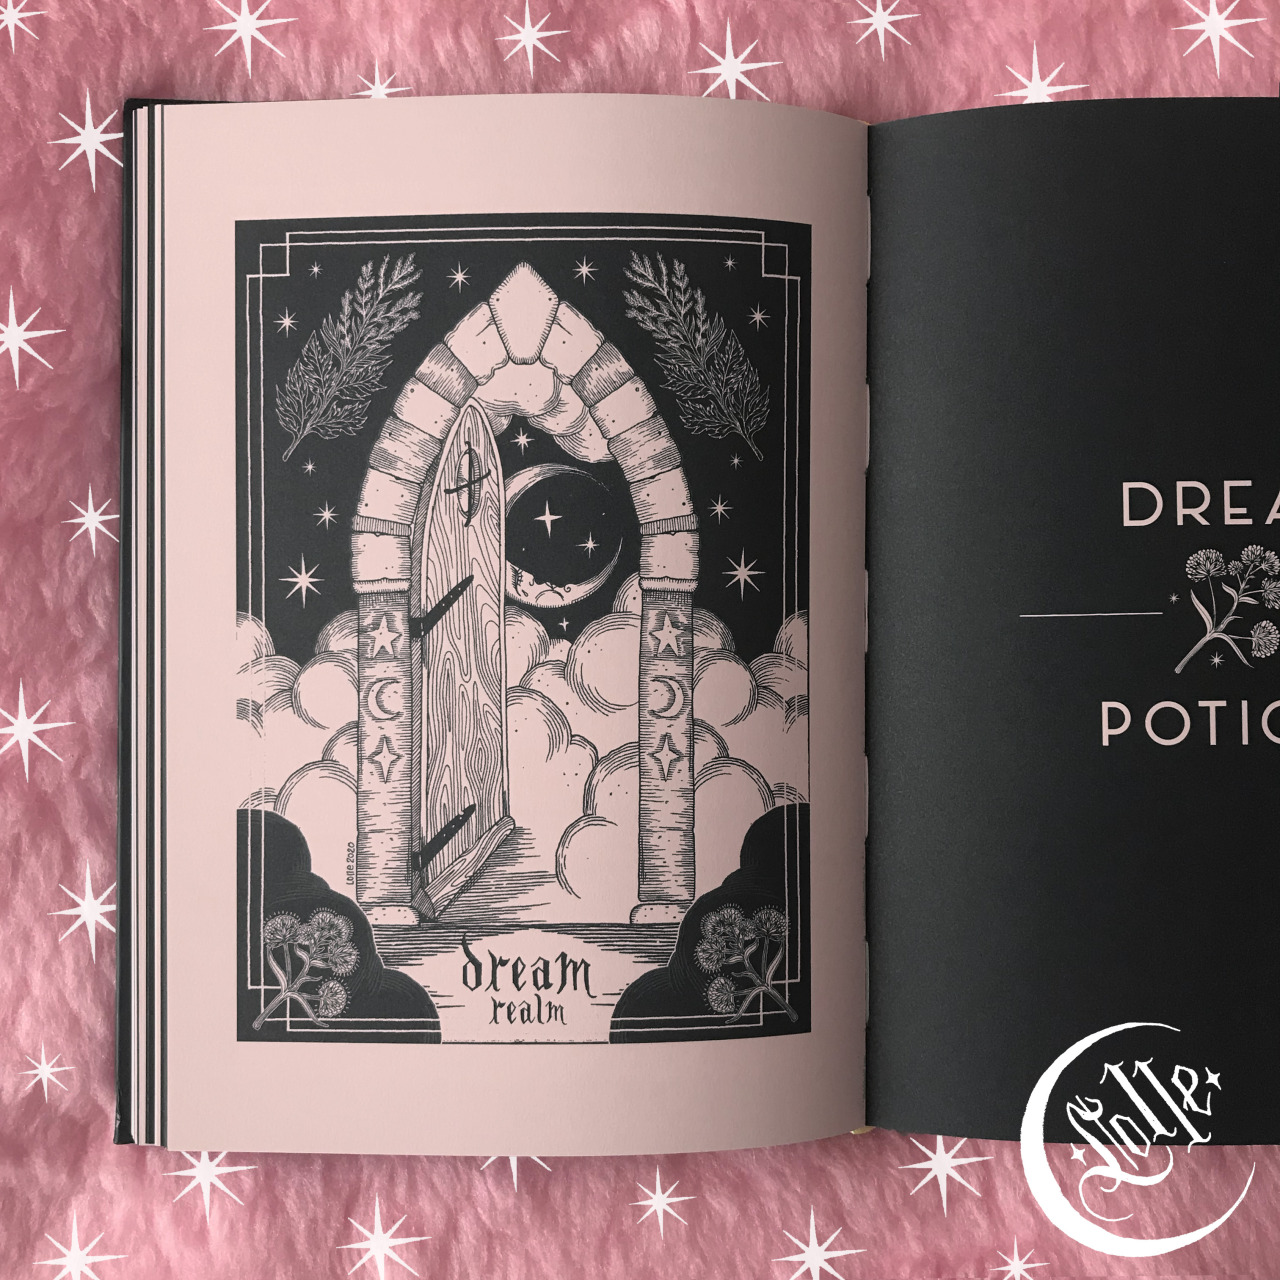 another illustration I made last year for the book Potions, Elixirs & Brews ✶ DREAM REALM ~ ©Lolle (2020) 🌜☁️✨  - - - To be a book illustrator have always been one of my biggest dreams ♡ ....and Im so happy I finally had the chance to test myself in this art field last year!  Ive to admit that I was pretty scared at first, but Im so happy I finally had the courage to join this adventure , because this have been a great satisfaction for me!🖤  ...I really hope to have more opportunities like this in the future! 🤞🏻✨ - - -  • Potions, Elixirs & Brews ~ author @hearthfirefox - edited by @watkinswisdom - graphic design @effe_logo ♡ #book#book illustration#ink illustration#original illustration#dream#dream realm #potion elixirs and brews #lolleart#lOll3ART#lOll3#potion#potion book